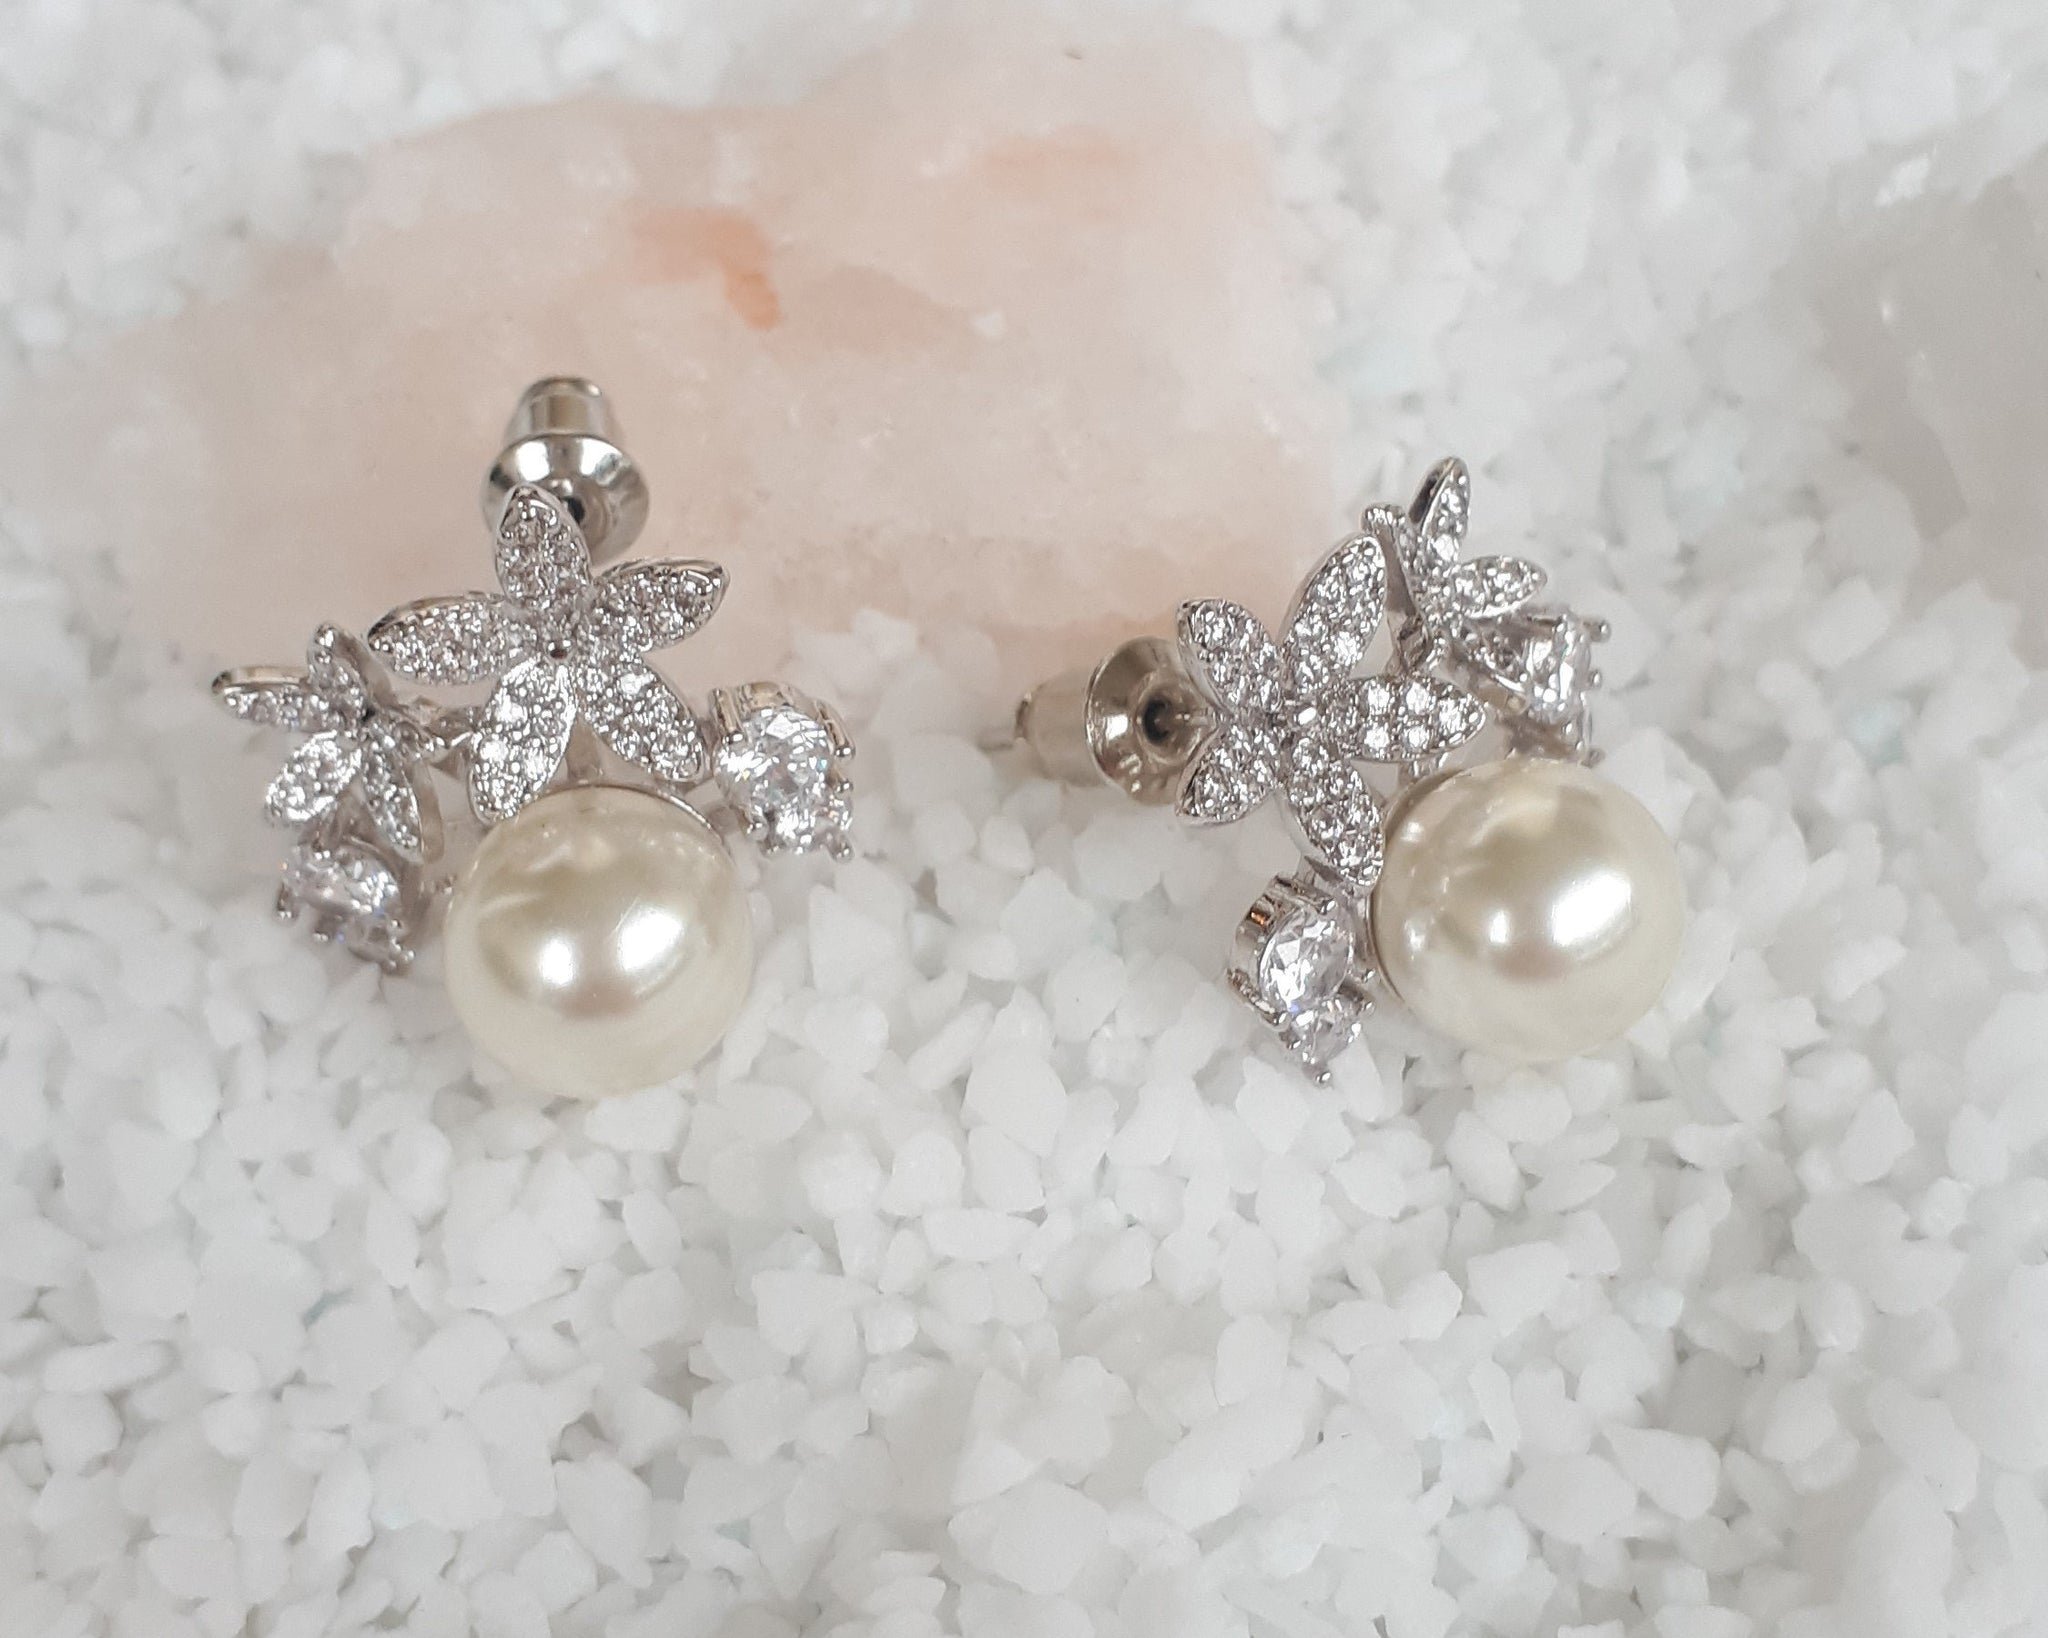 Vintage Style Pearl & Crystal Stud Earrings, Carrie